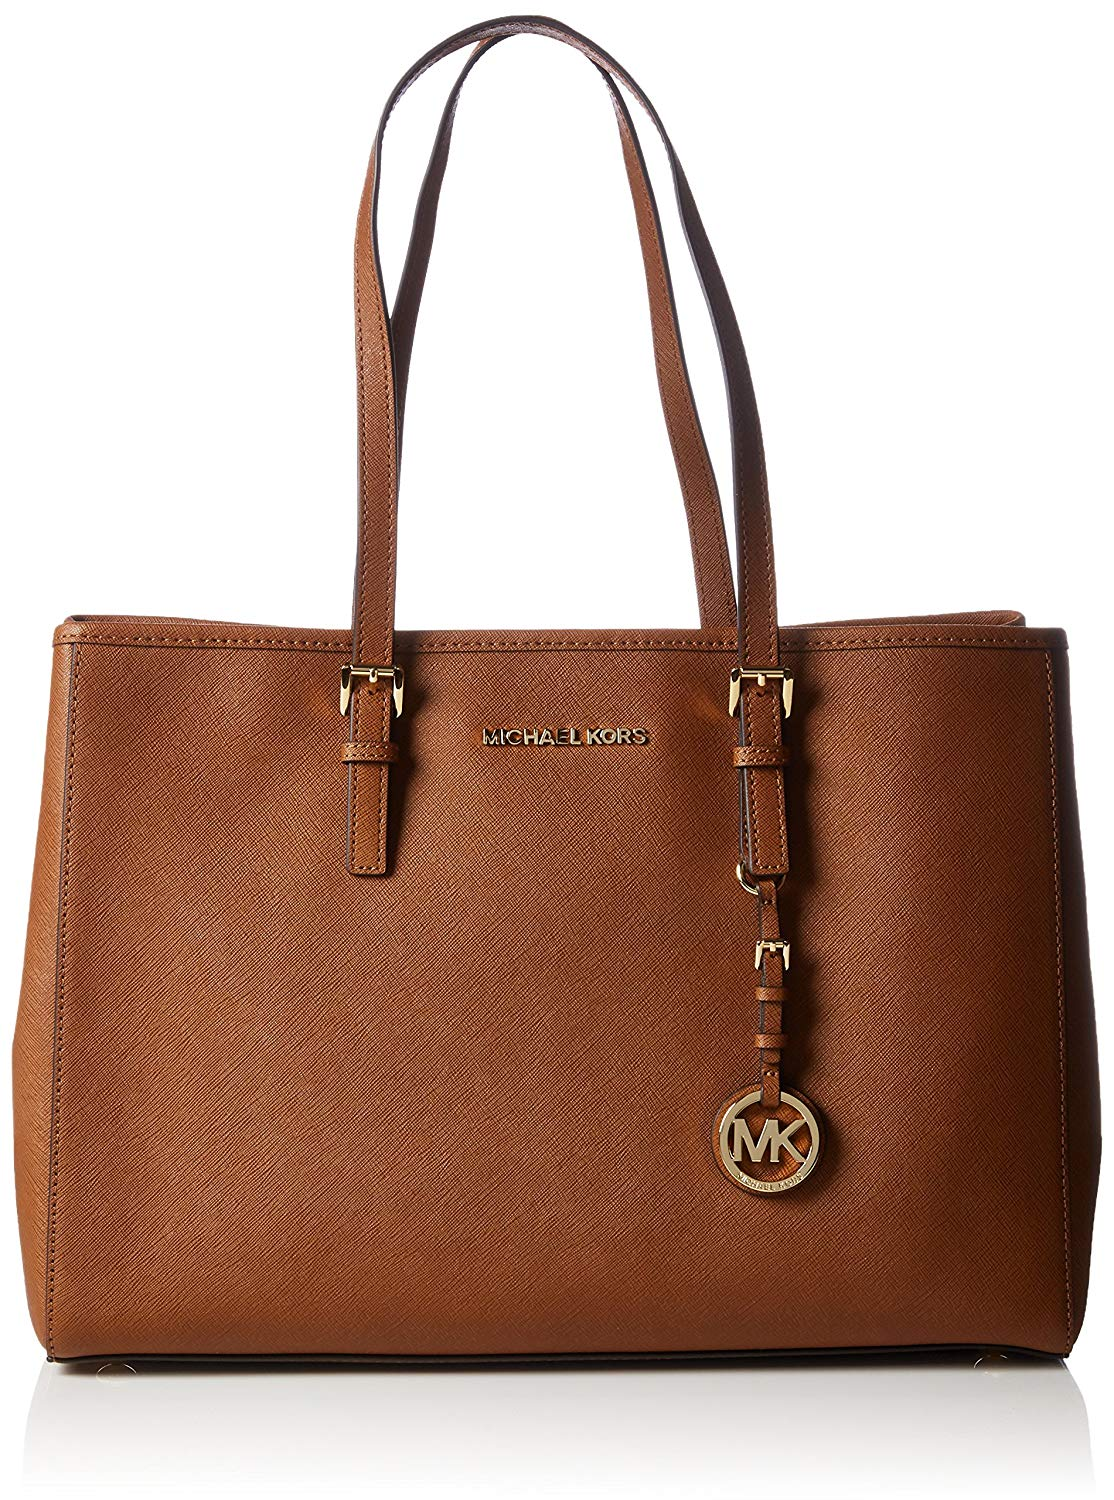 jet set michael kors sac